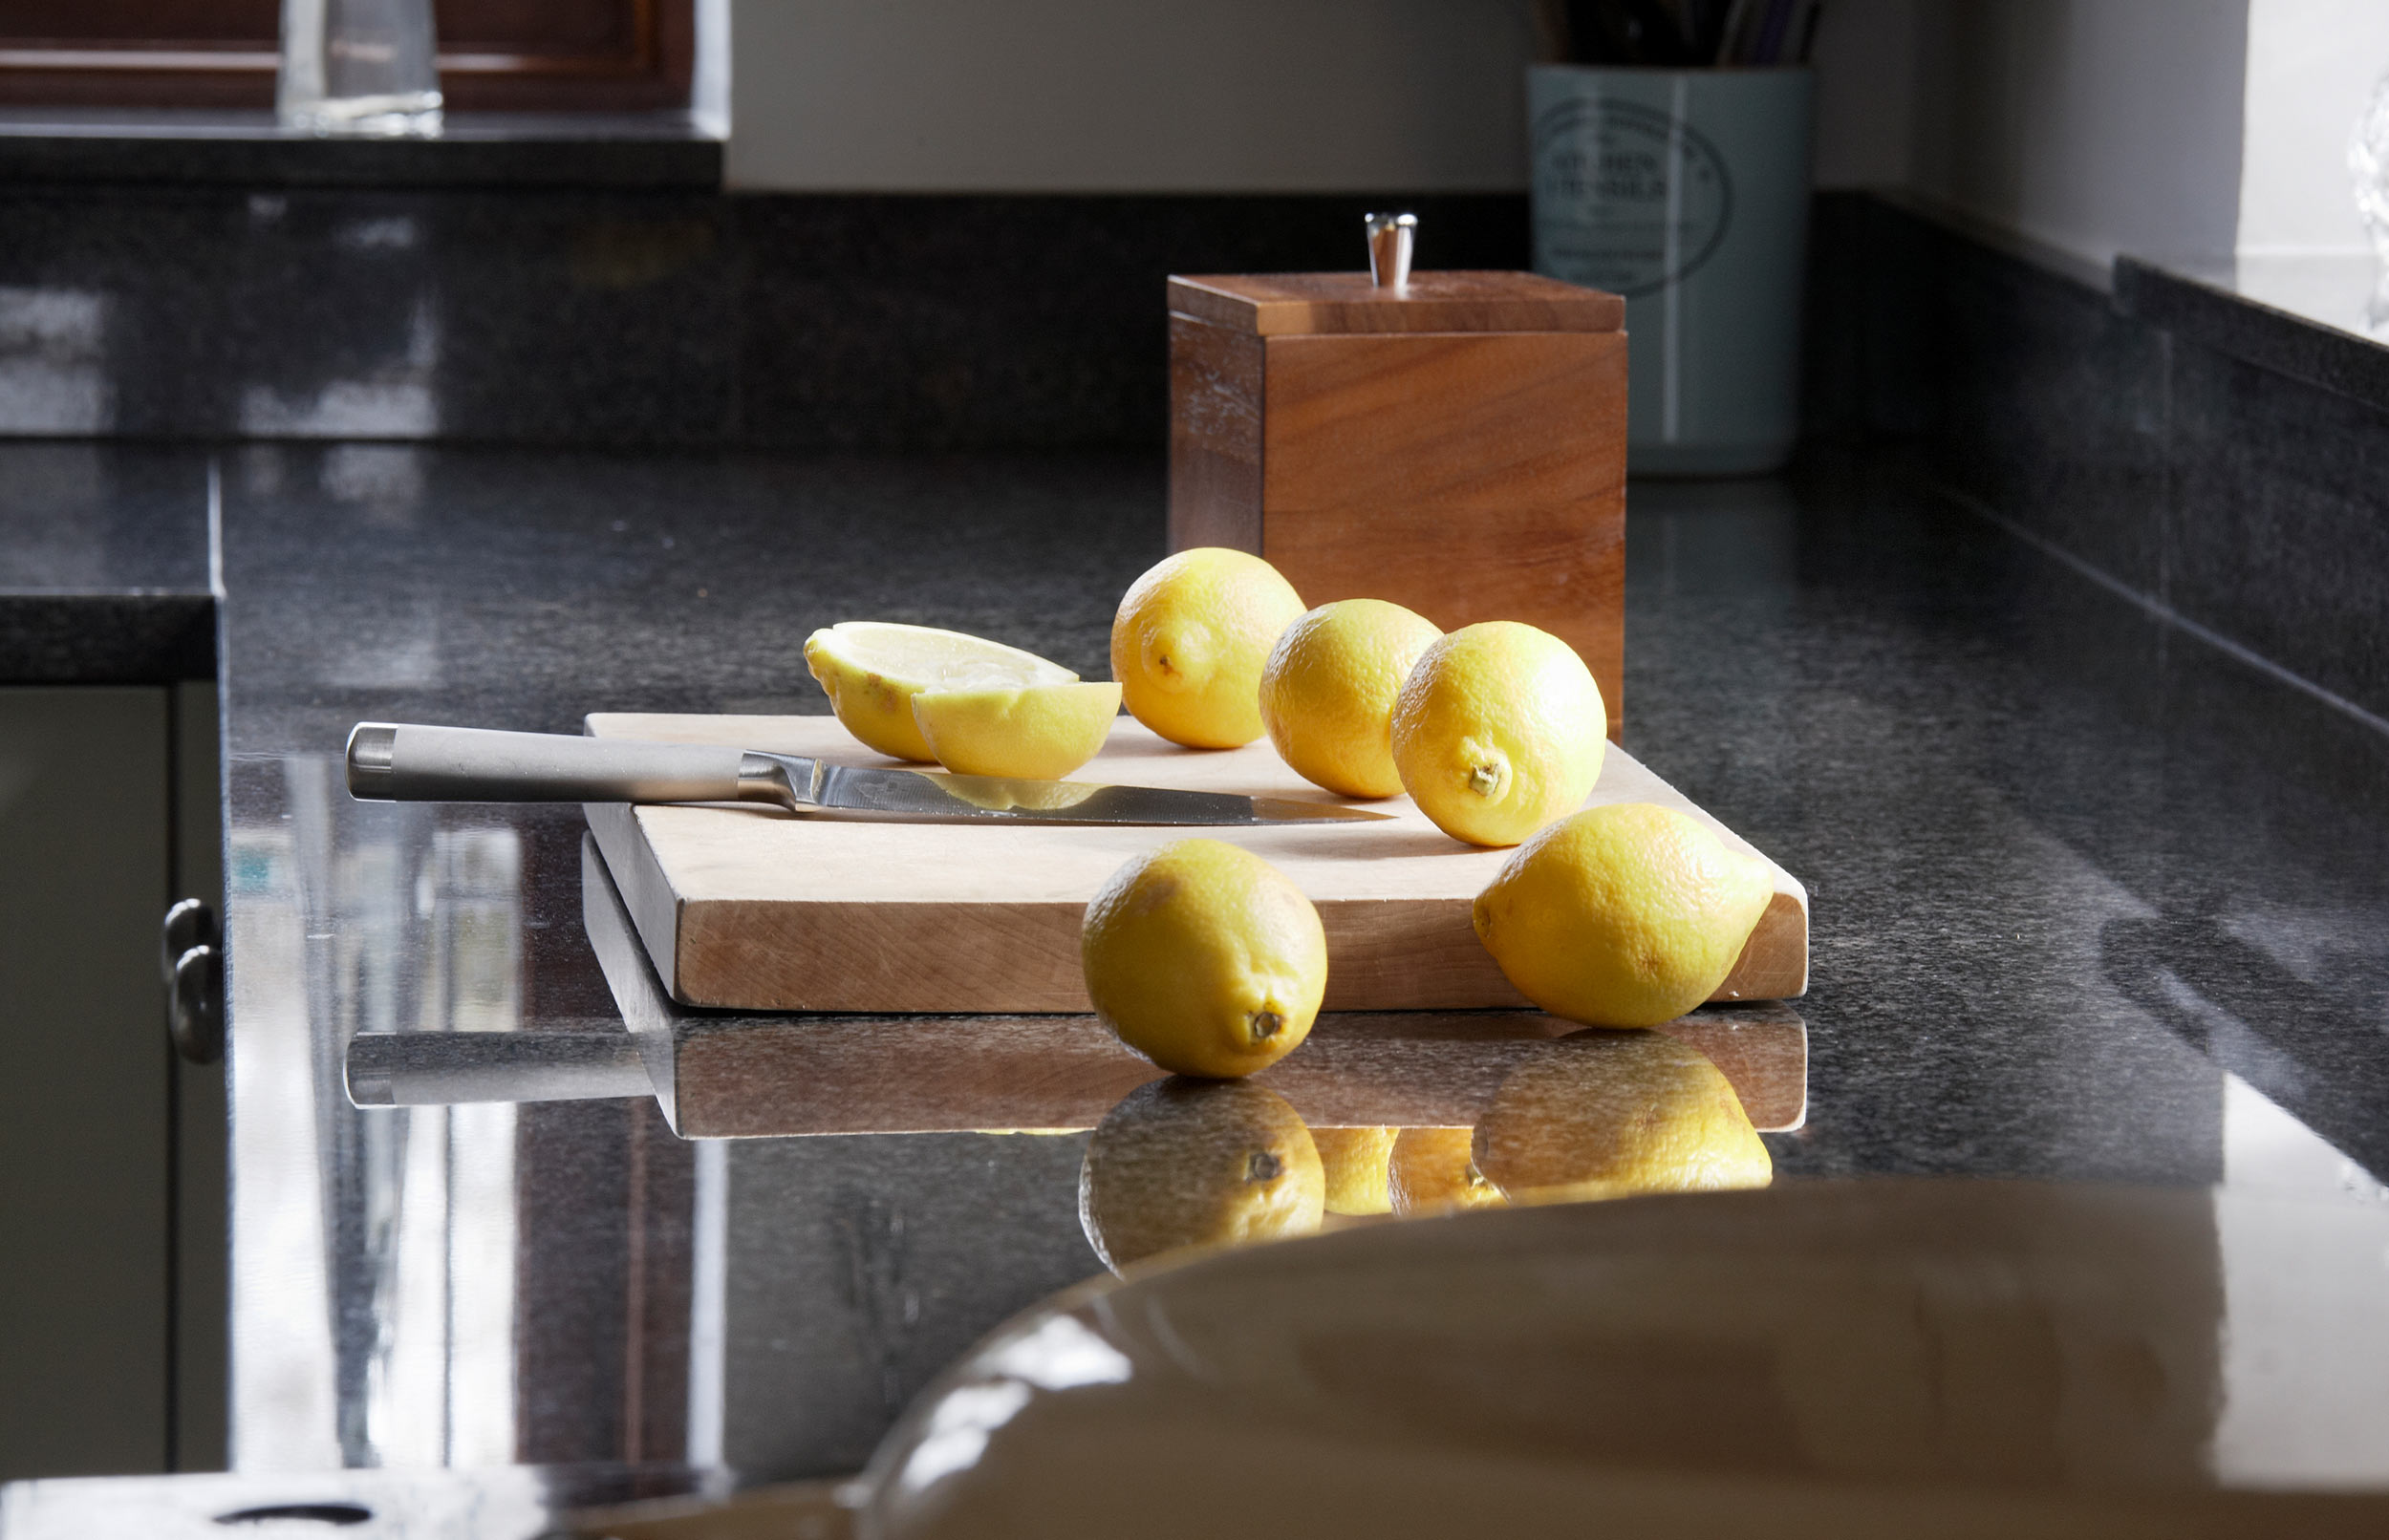 Cosy Bespoke Kitchen - Lemons on Wooden Board on Dark Top Surface